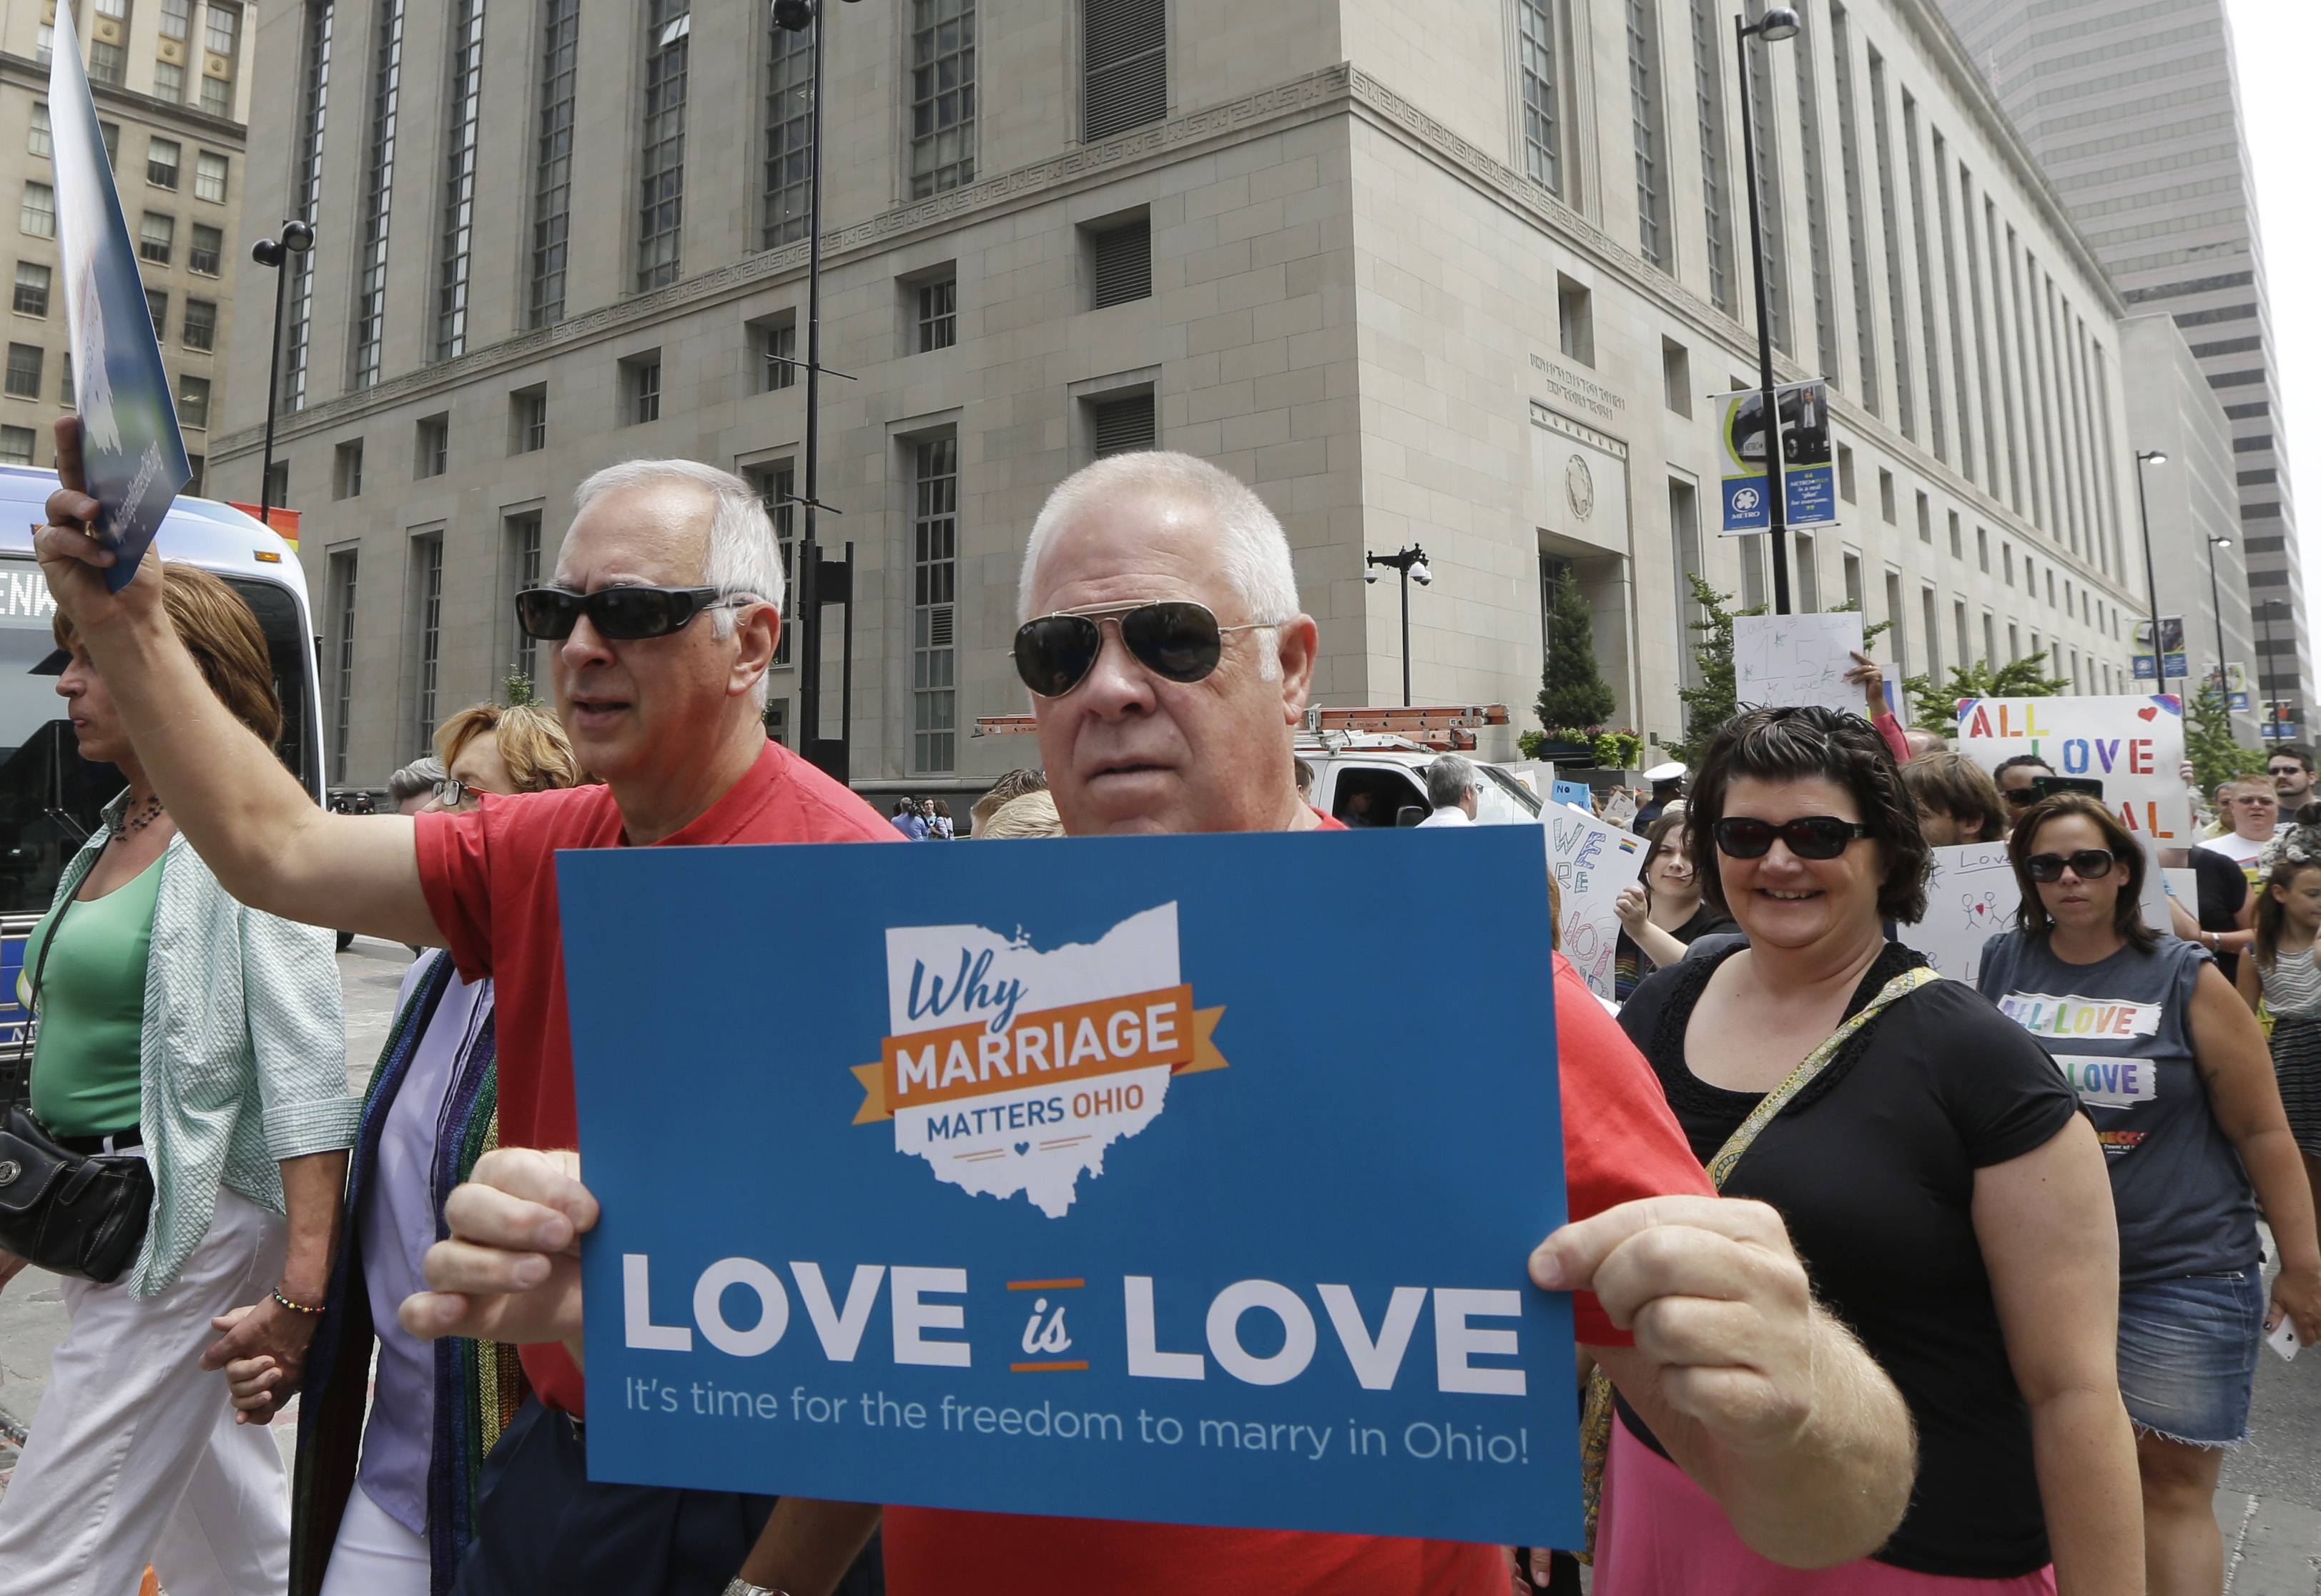 Gay marriage supporters march from the Potter Stewart United States Courthouse, rear, Wednesday, Aug. 6, 2014, to Fountain Square in Cincinnati. Three judges of the 6th U.S. Circuit Court of Appeals in Cincinnati heard arguments Wednesday in six gay marriage fights from four states, Kentucky, Michigan, Ohio and Tennessee.